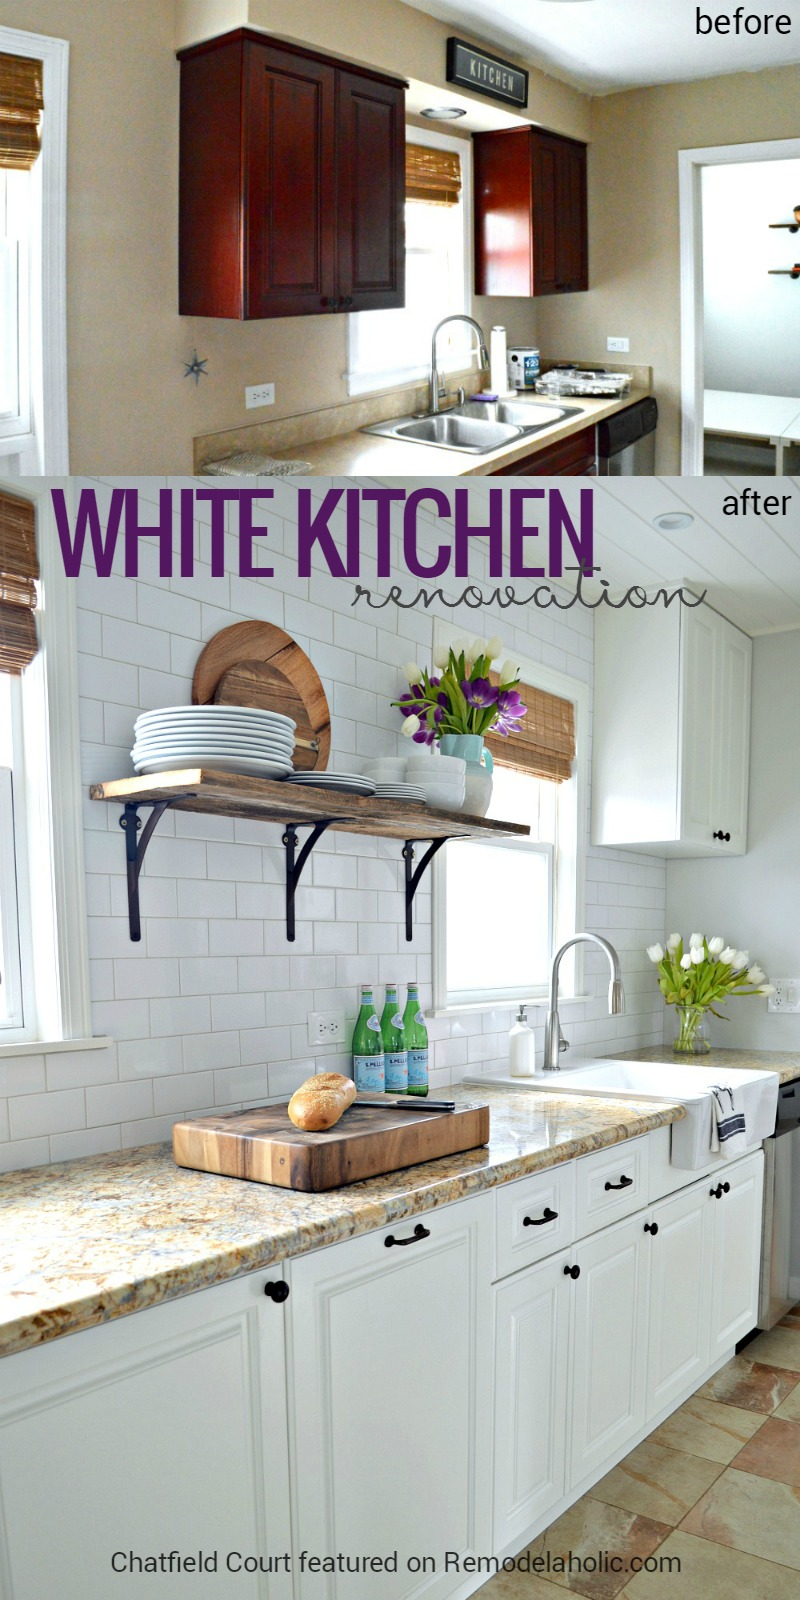 White Kitchen Renovation remodelaholic | diy plank ceiling in a beautiful white kitchen